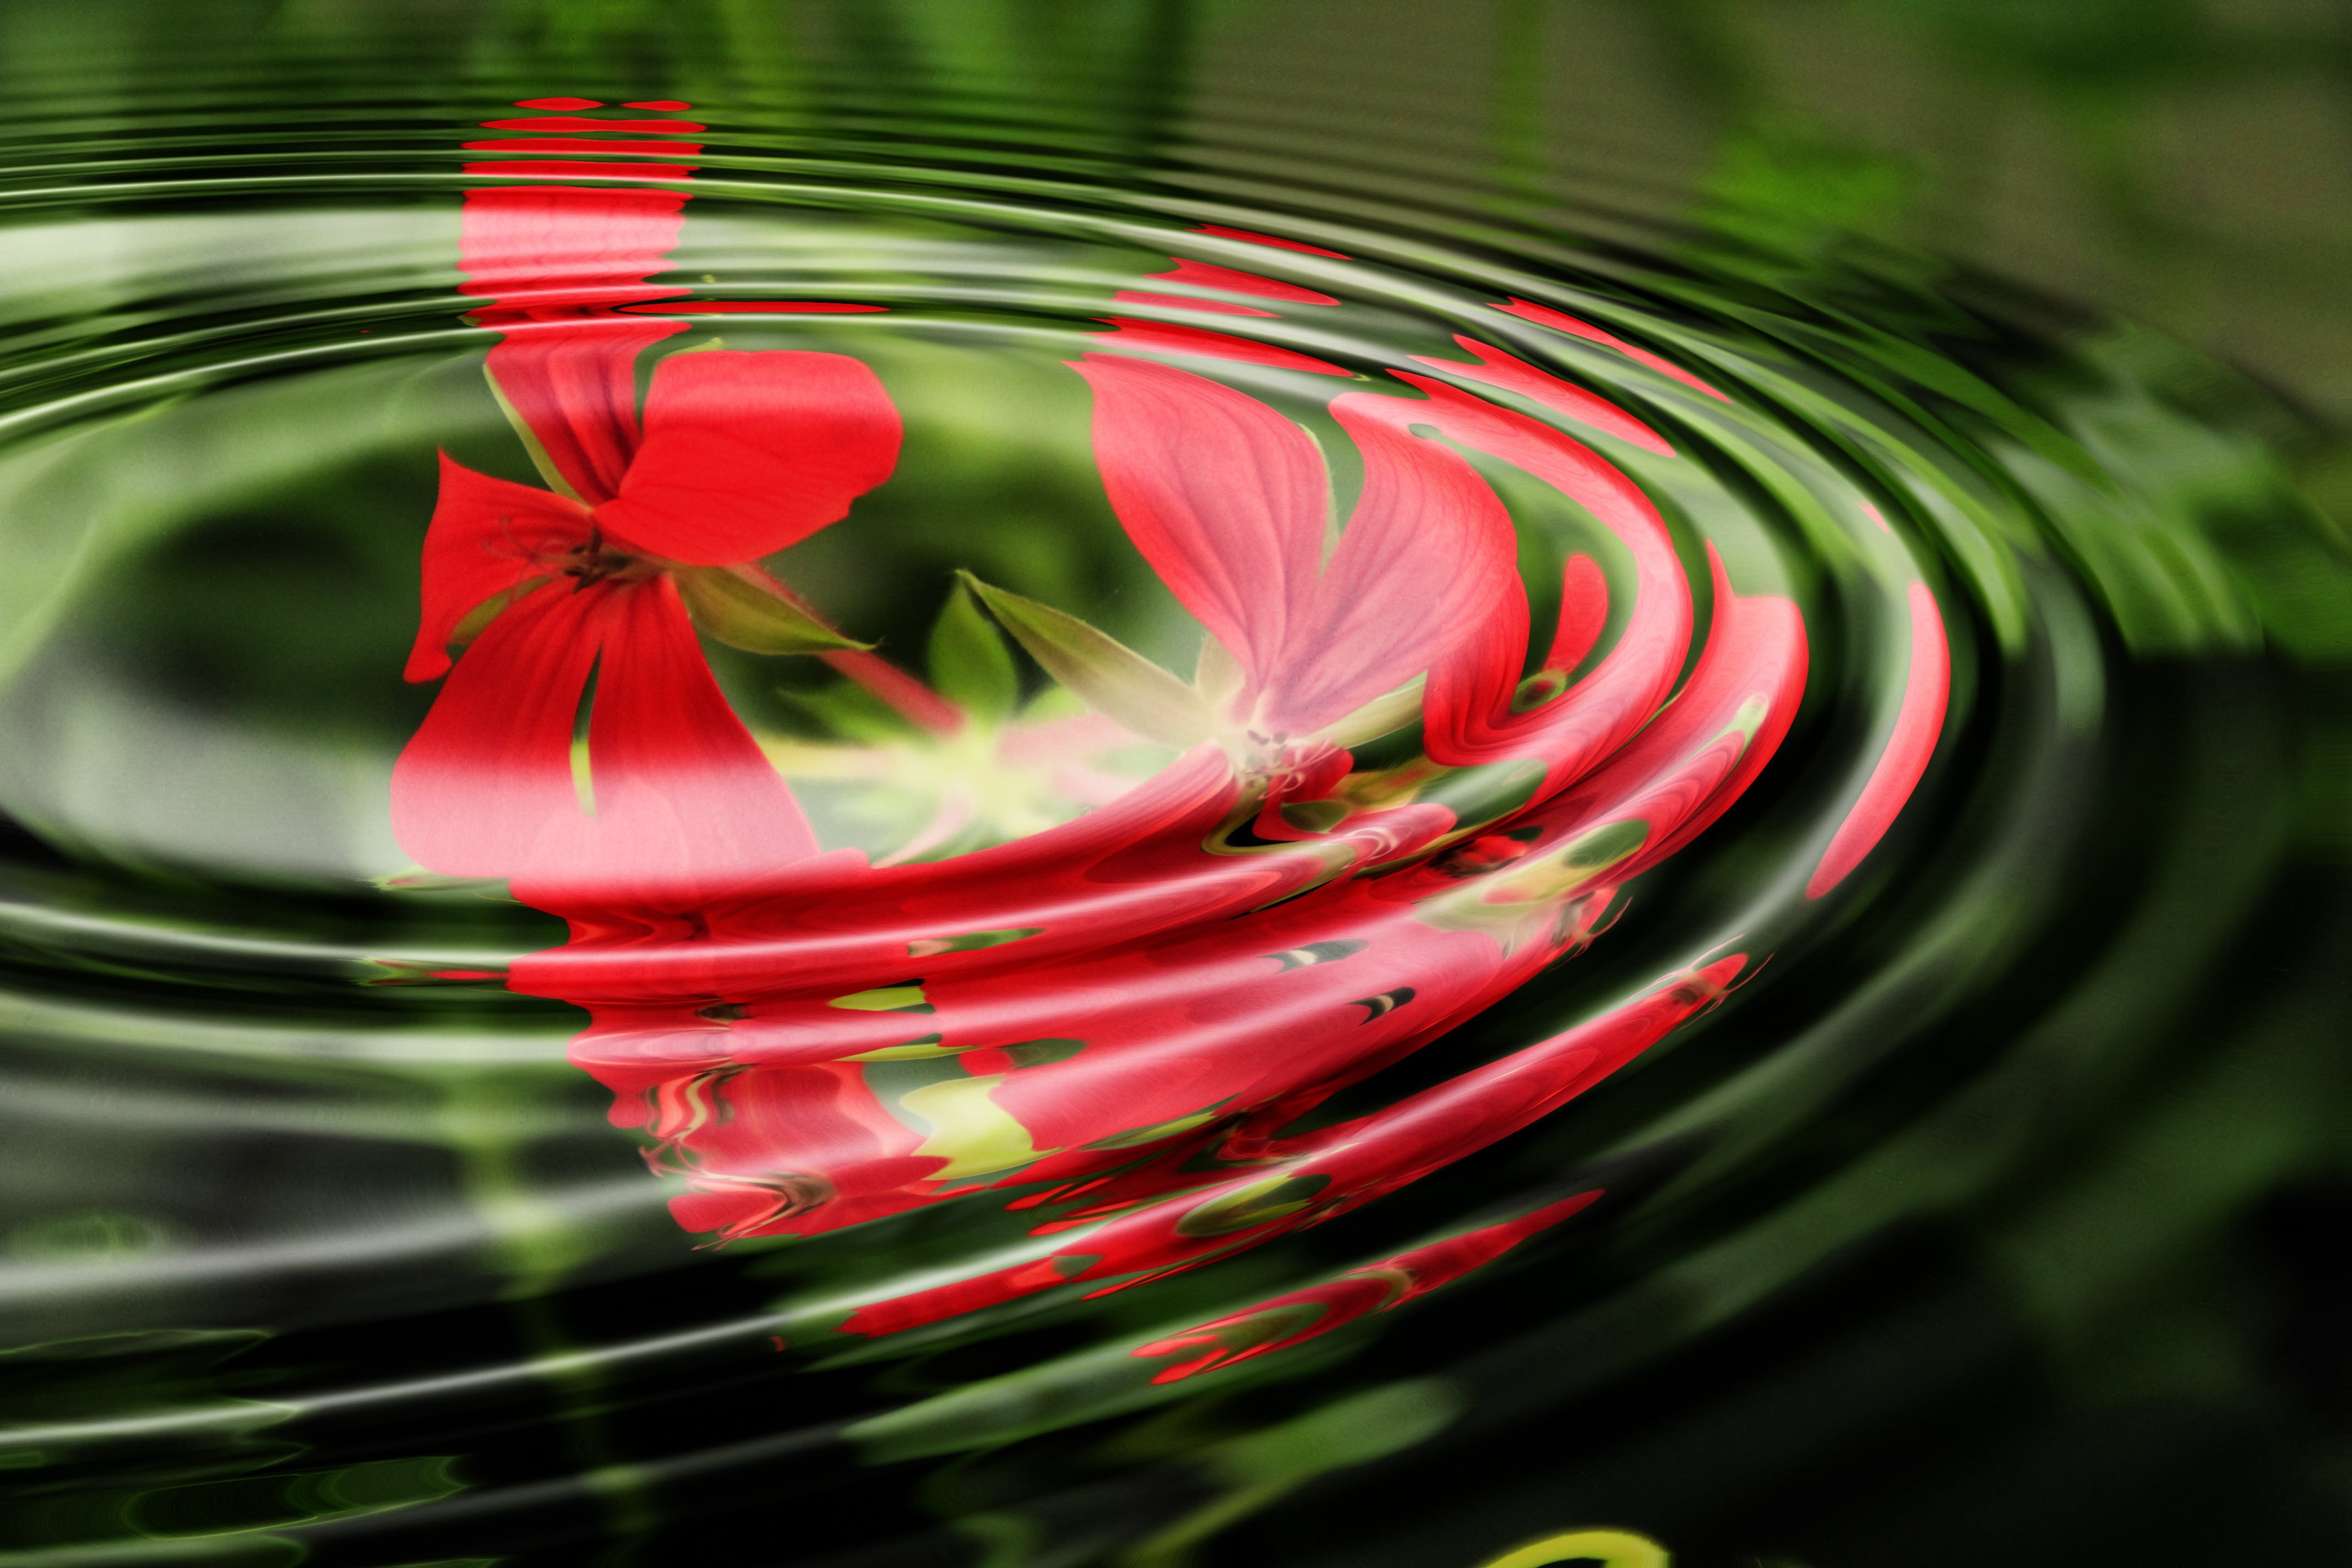 Red Flowers Under the Water